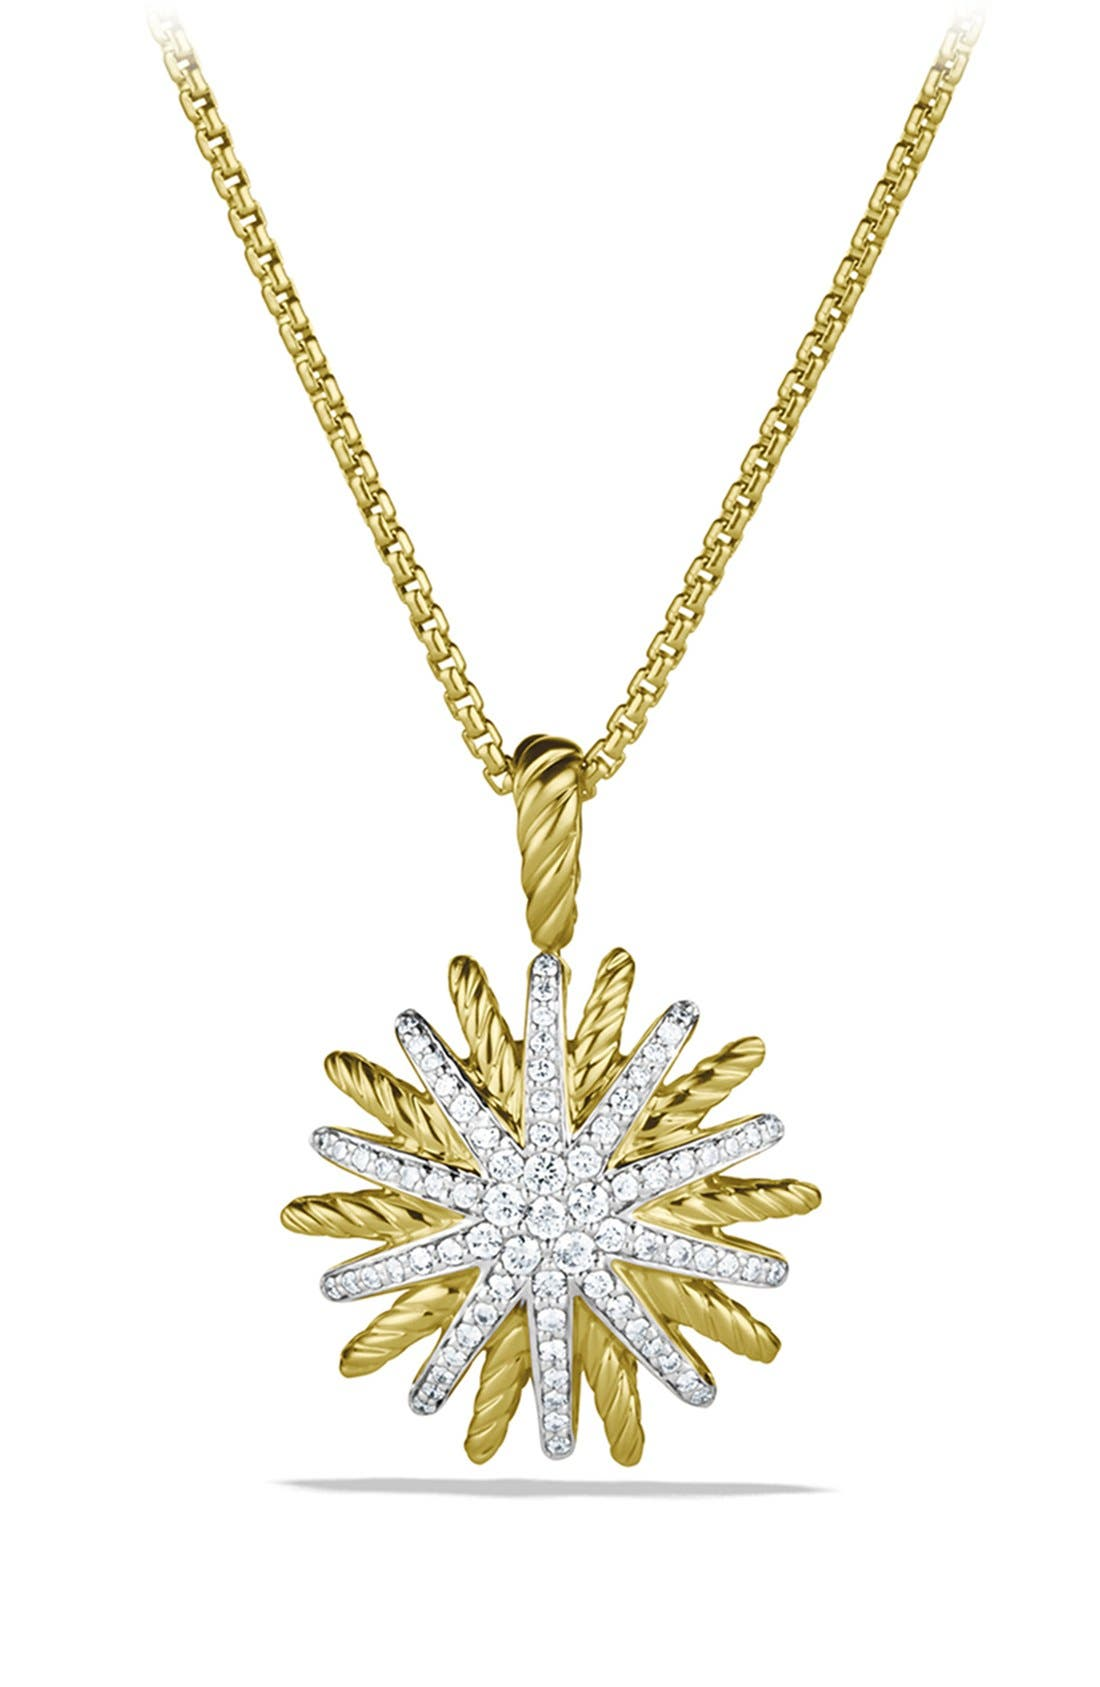 Alternate Image 1 Selected - David Yurman 'Starburst' Small Pendant with Diamonds in Gold on Chain